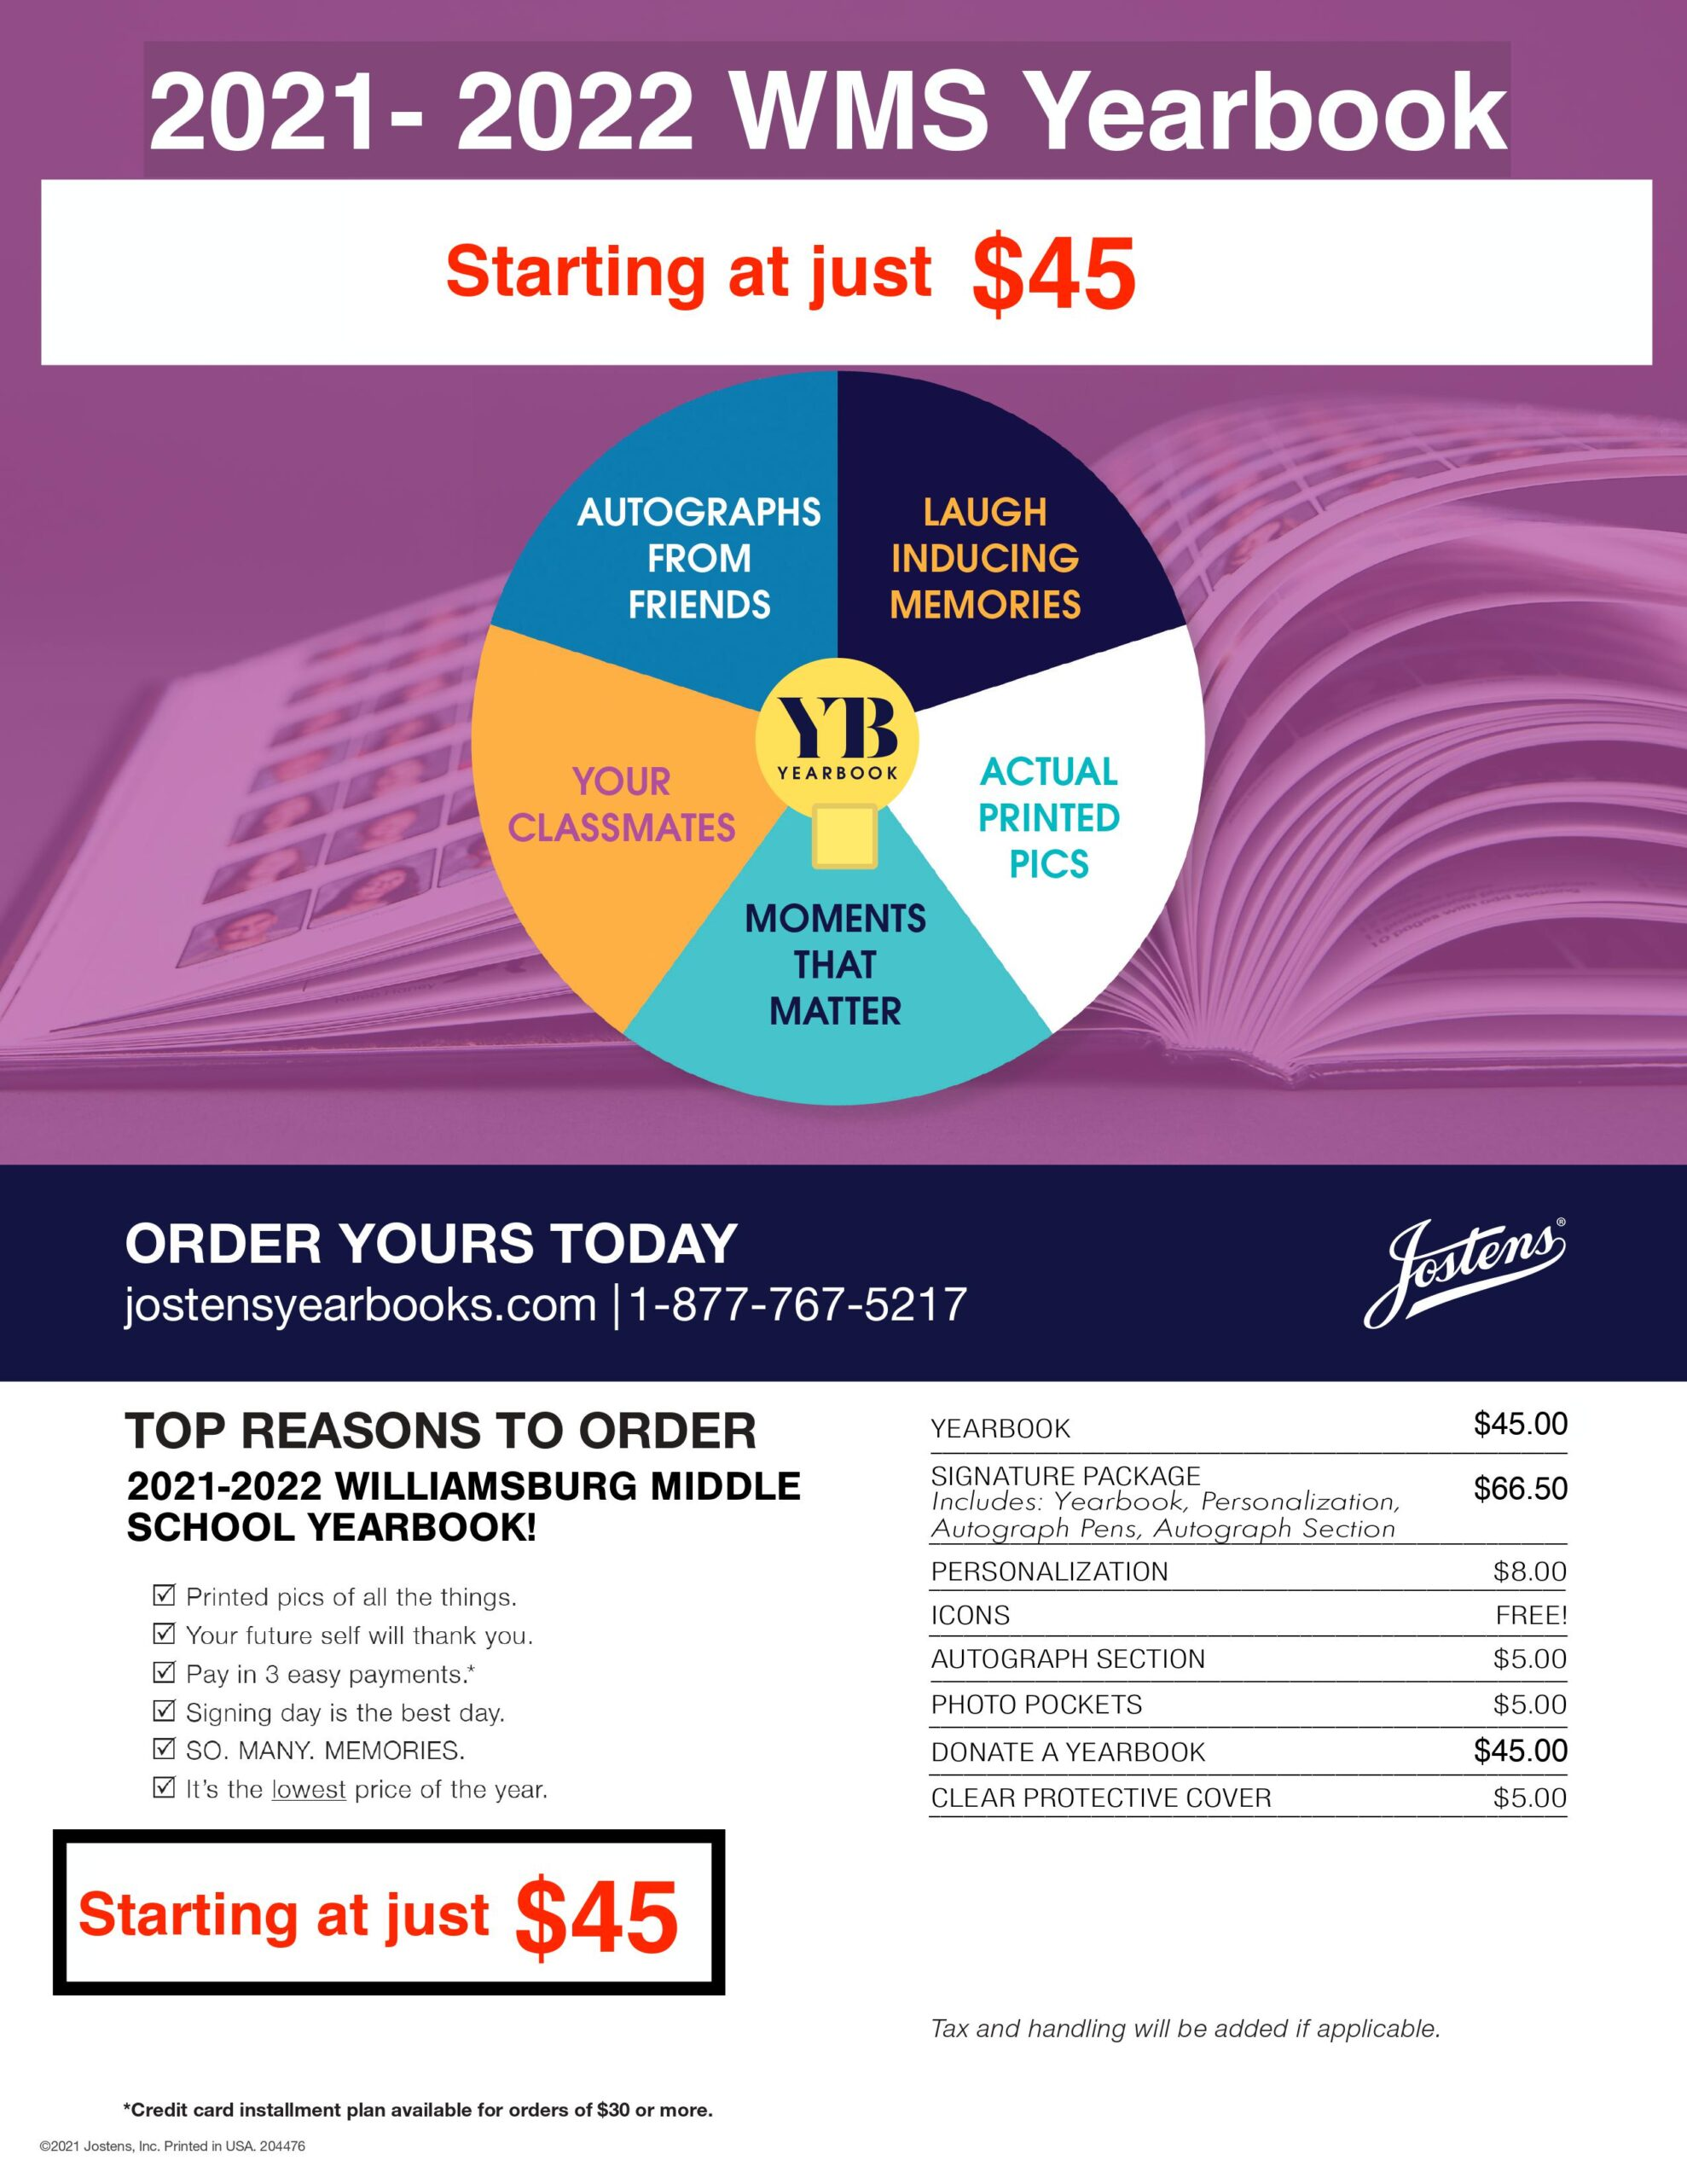 Yearbook Starting at just $45